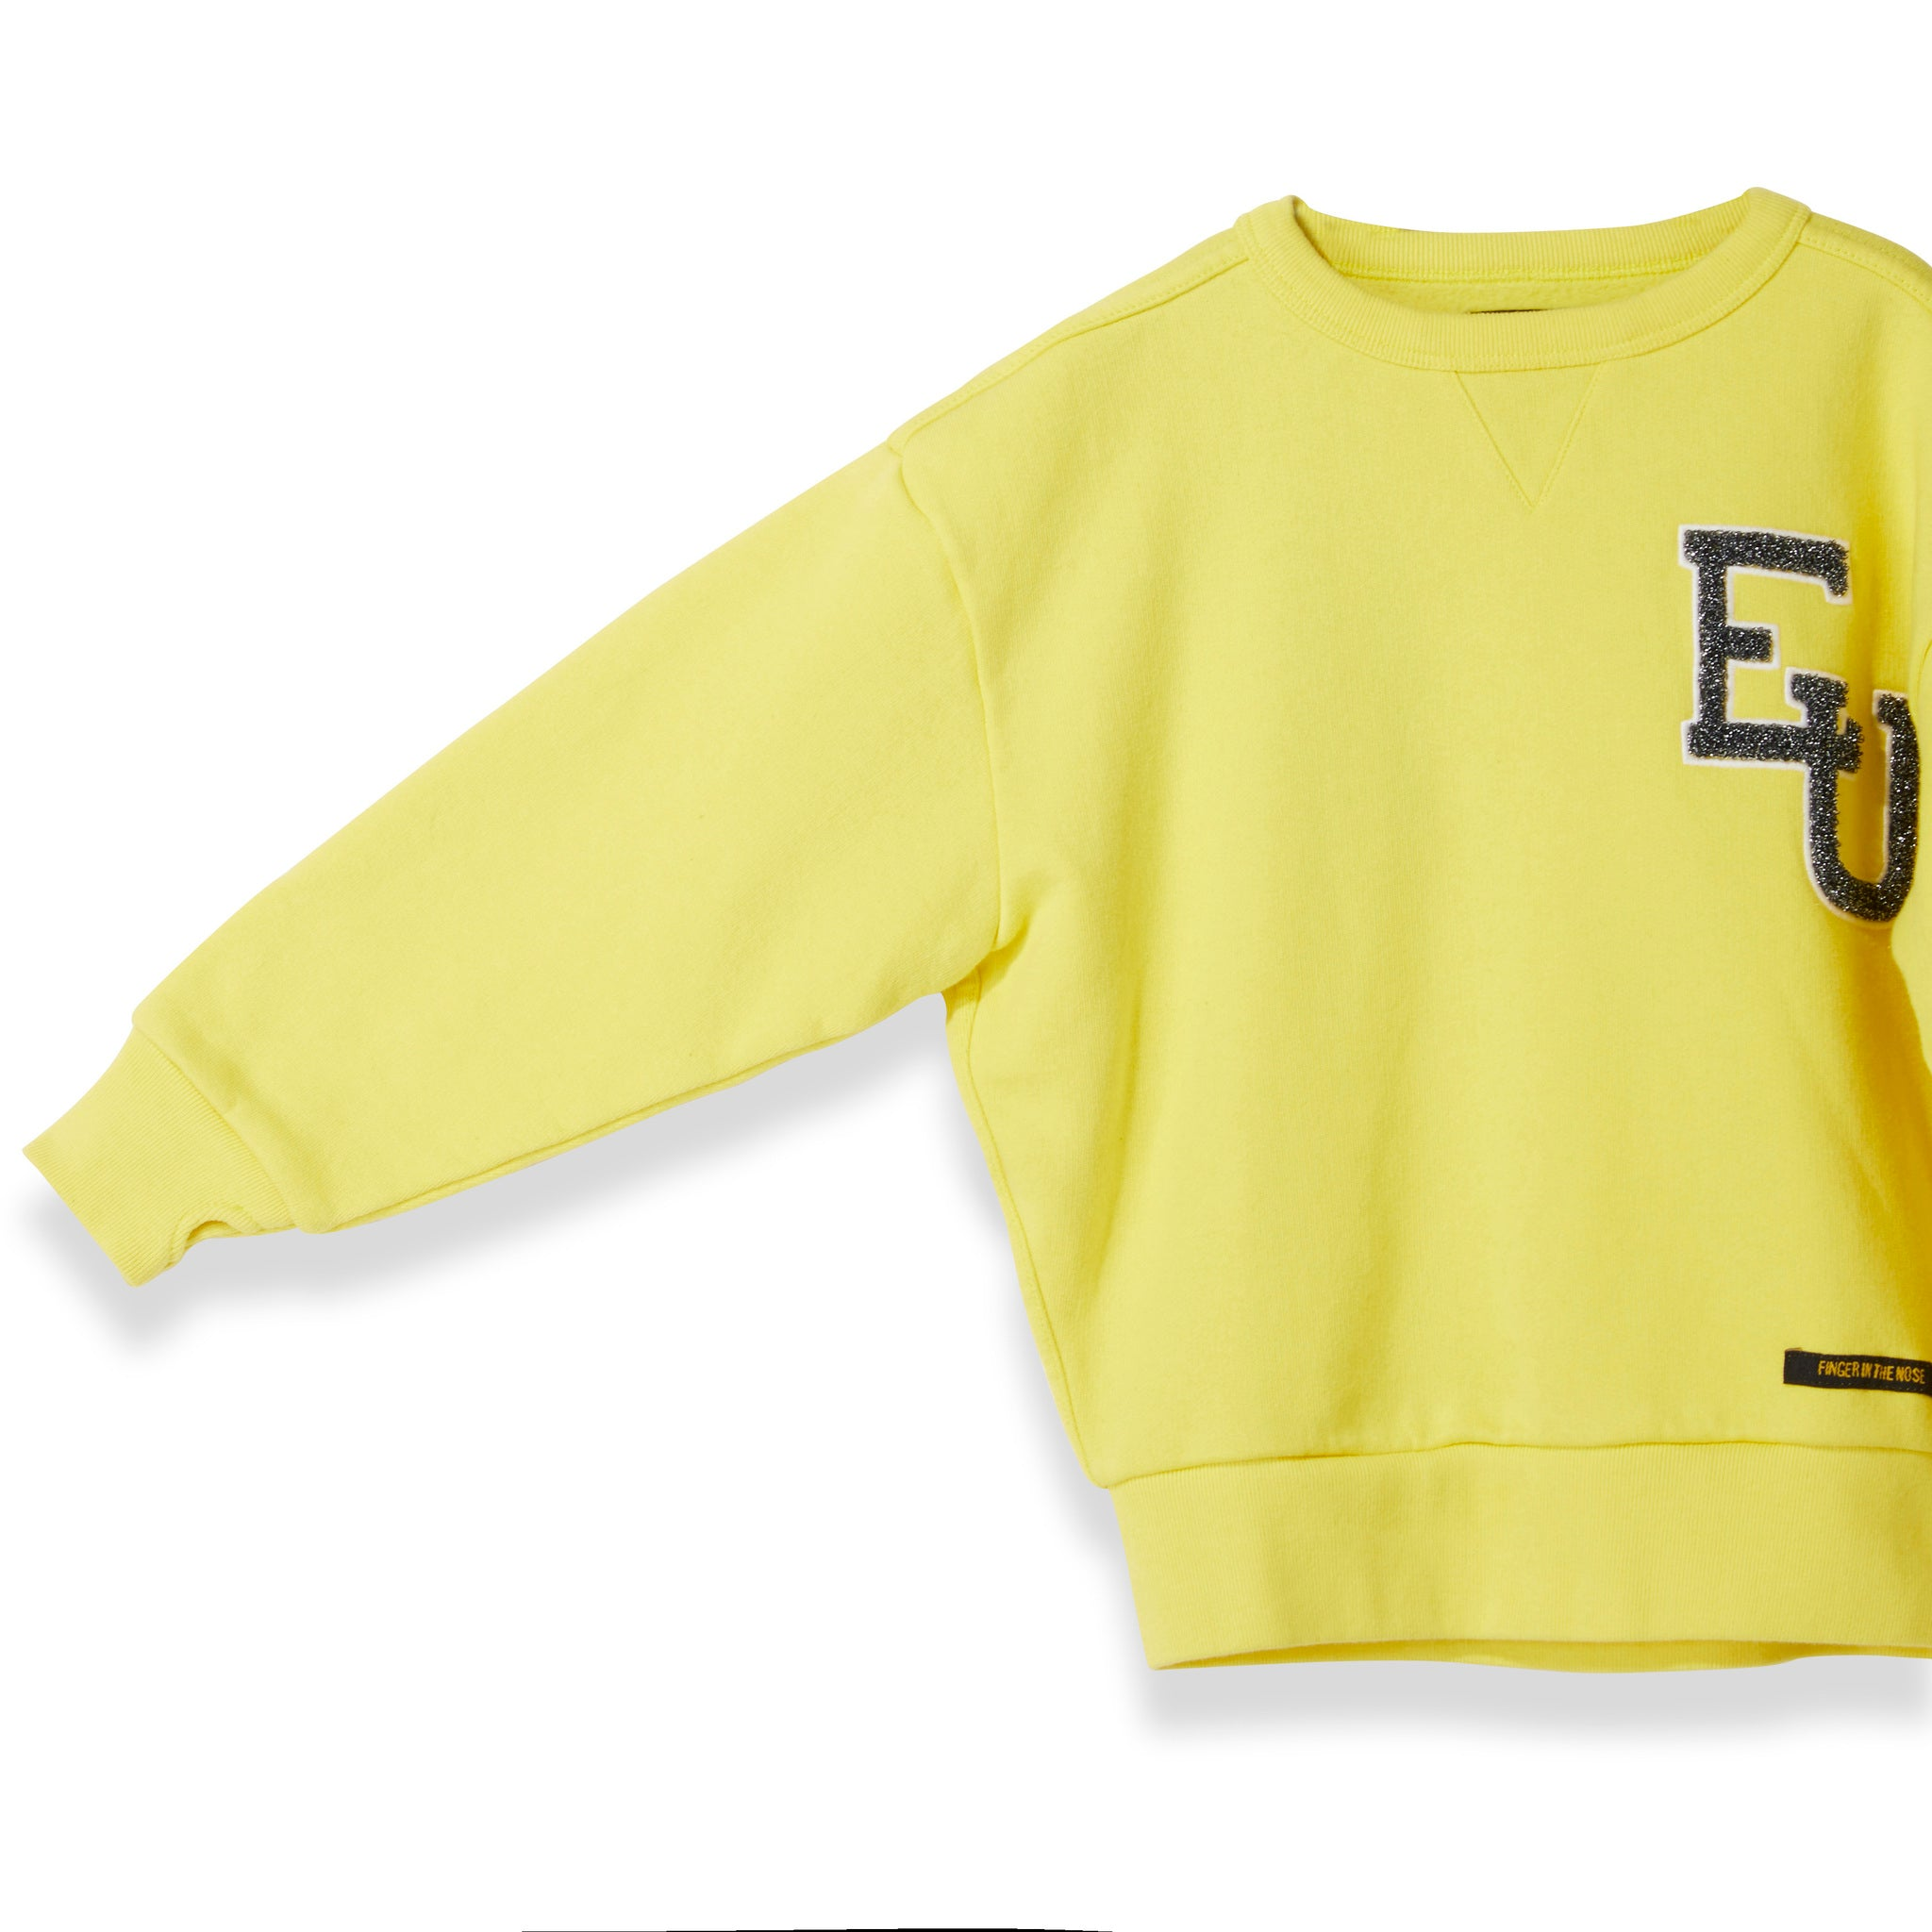 ACADEMY Yellow EU -  Woven Knitted Neck Sweatshirt 4